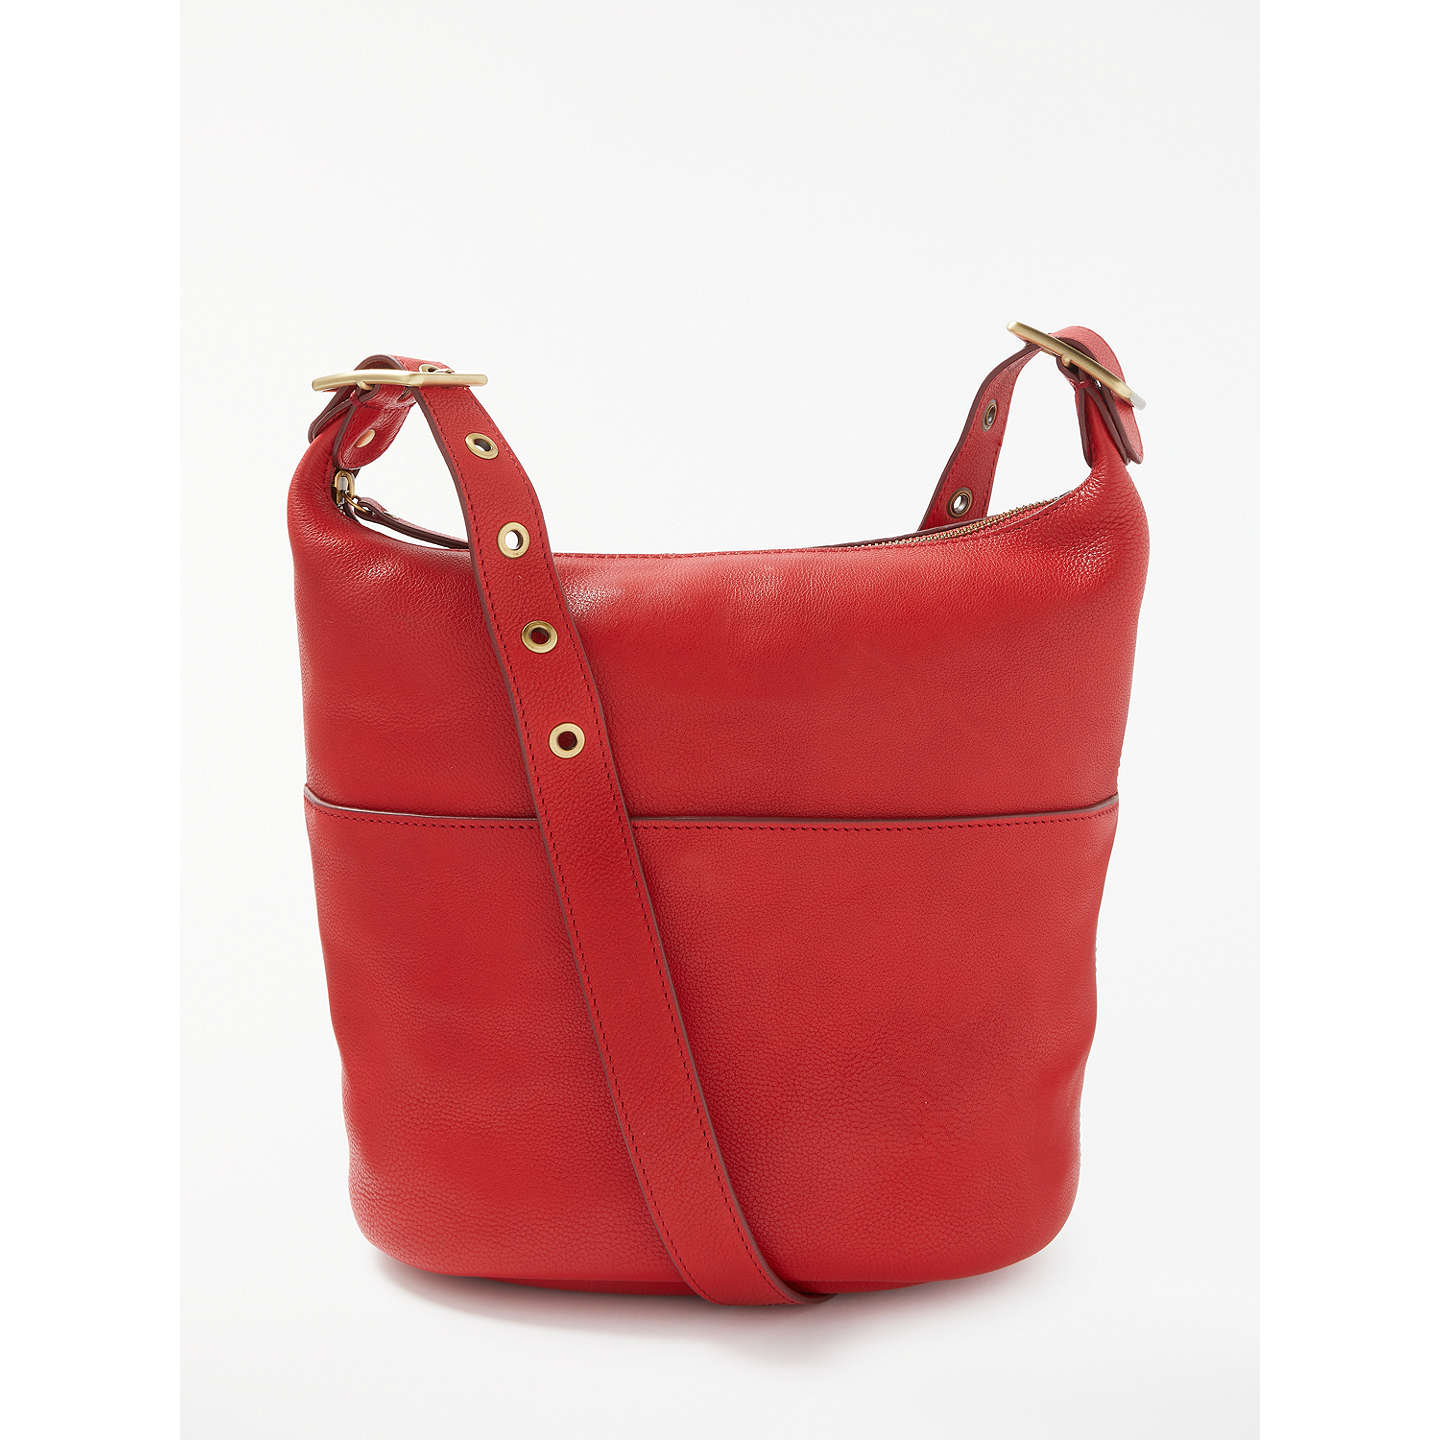 Buyjohn Lewis Kepley Leather Shoulder Bag, Red Online At Johnlewiscom